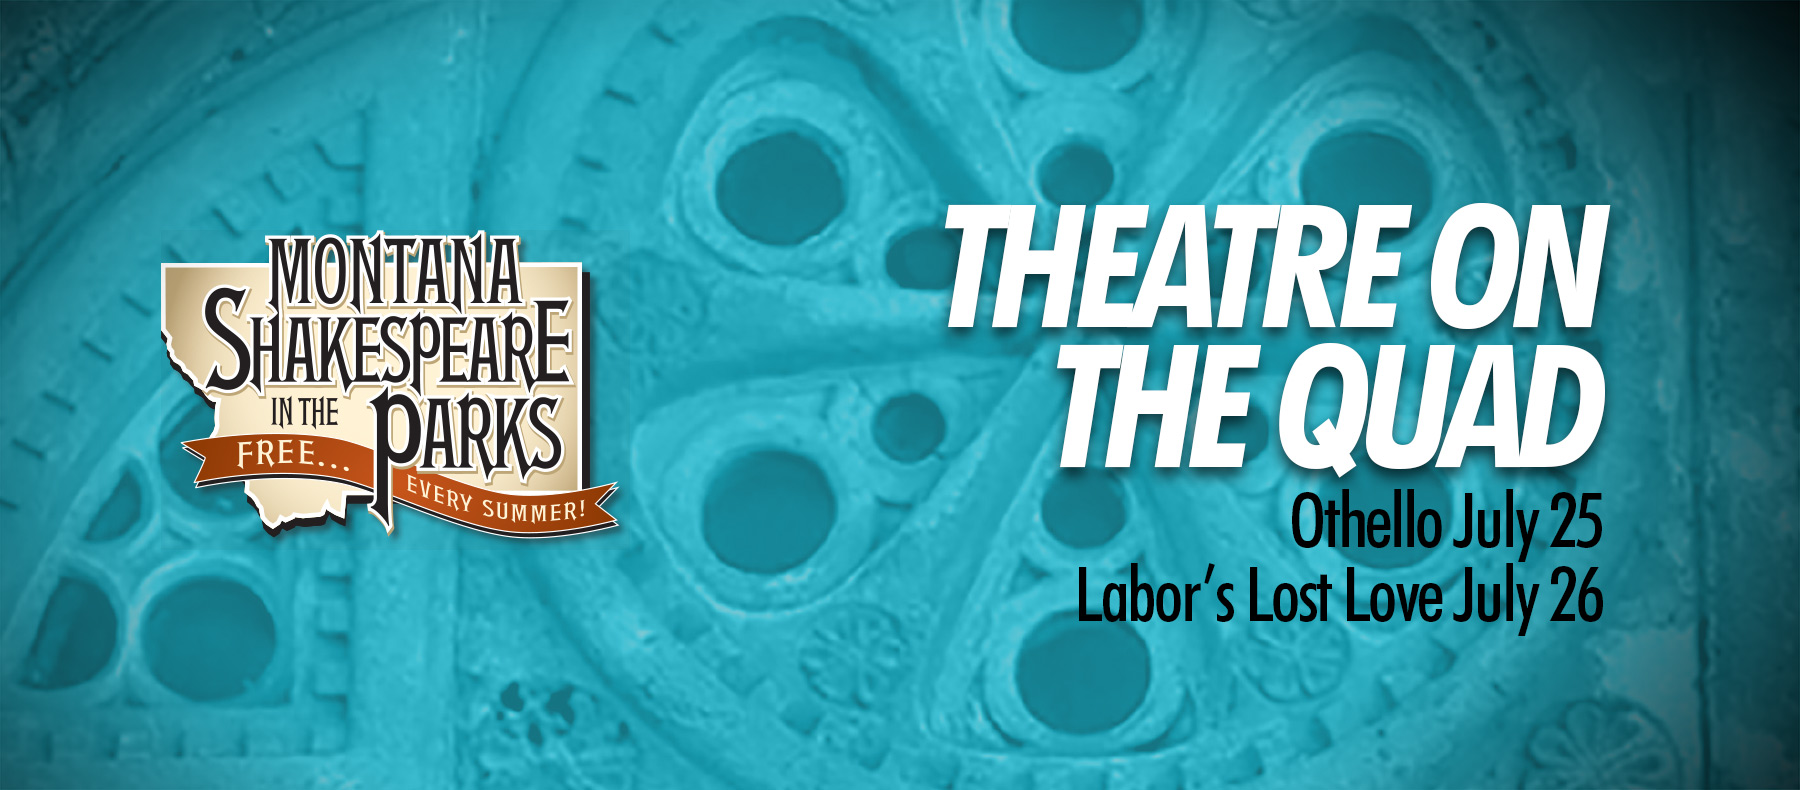 Montana Shakespeare in the Parks FREE every summer Theatre on the quad Othello July 25 Labor's Lost Love July 26